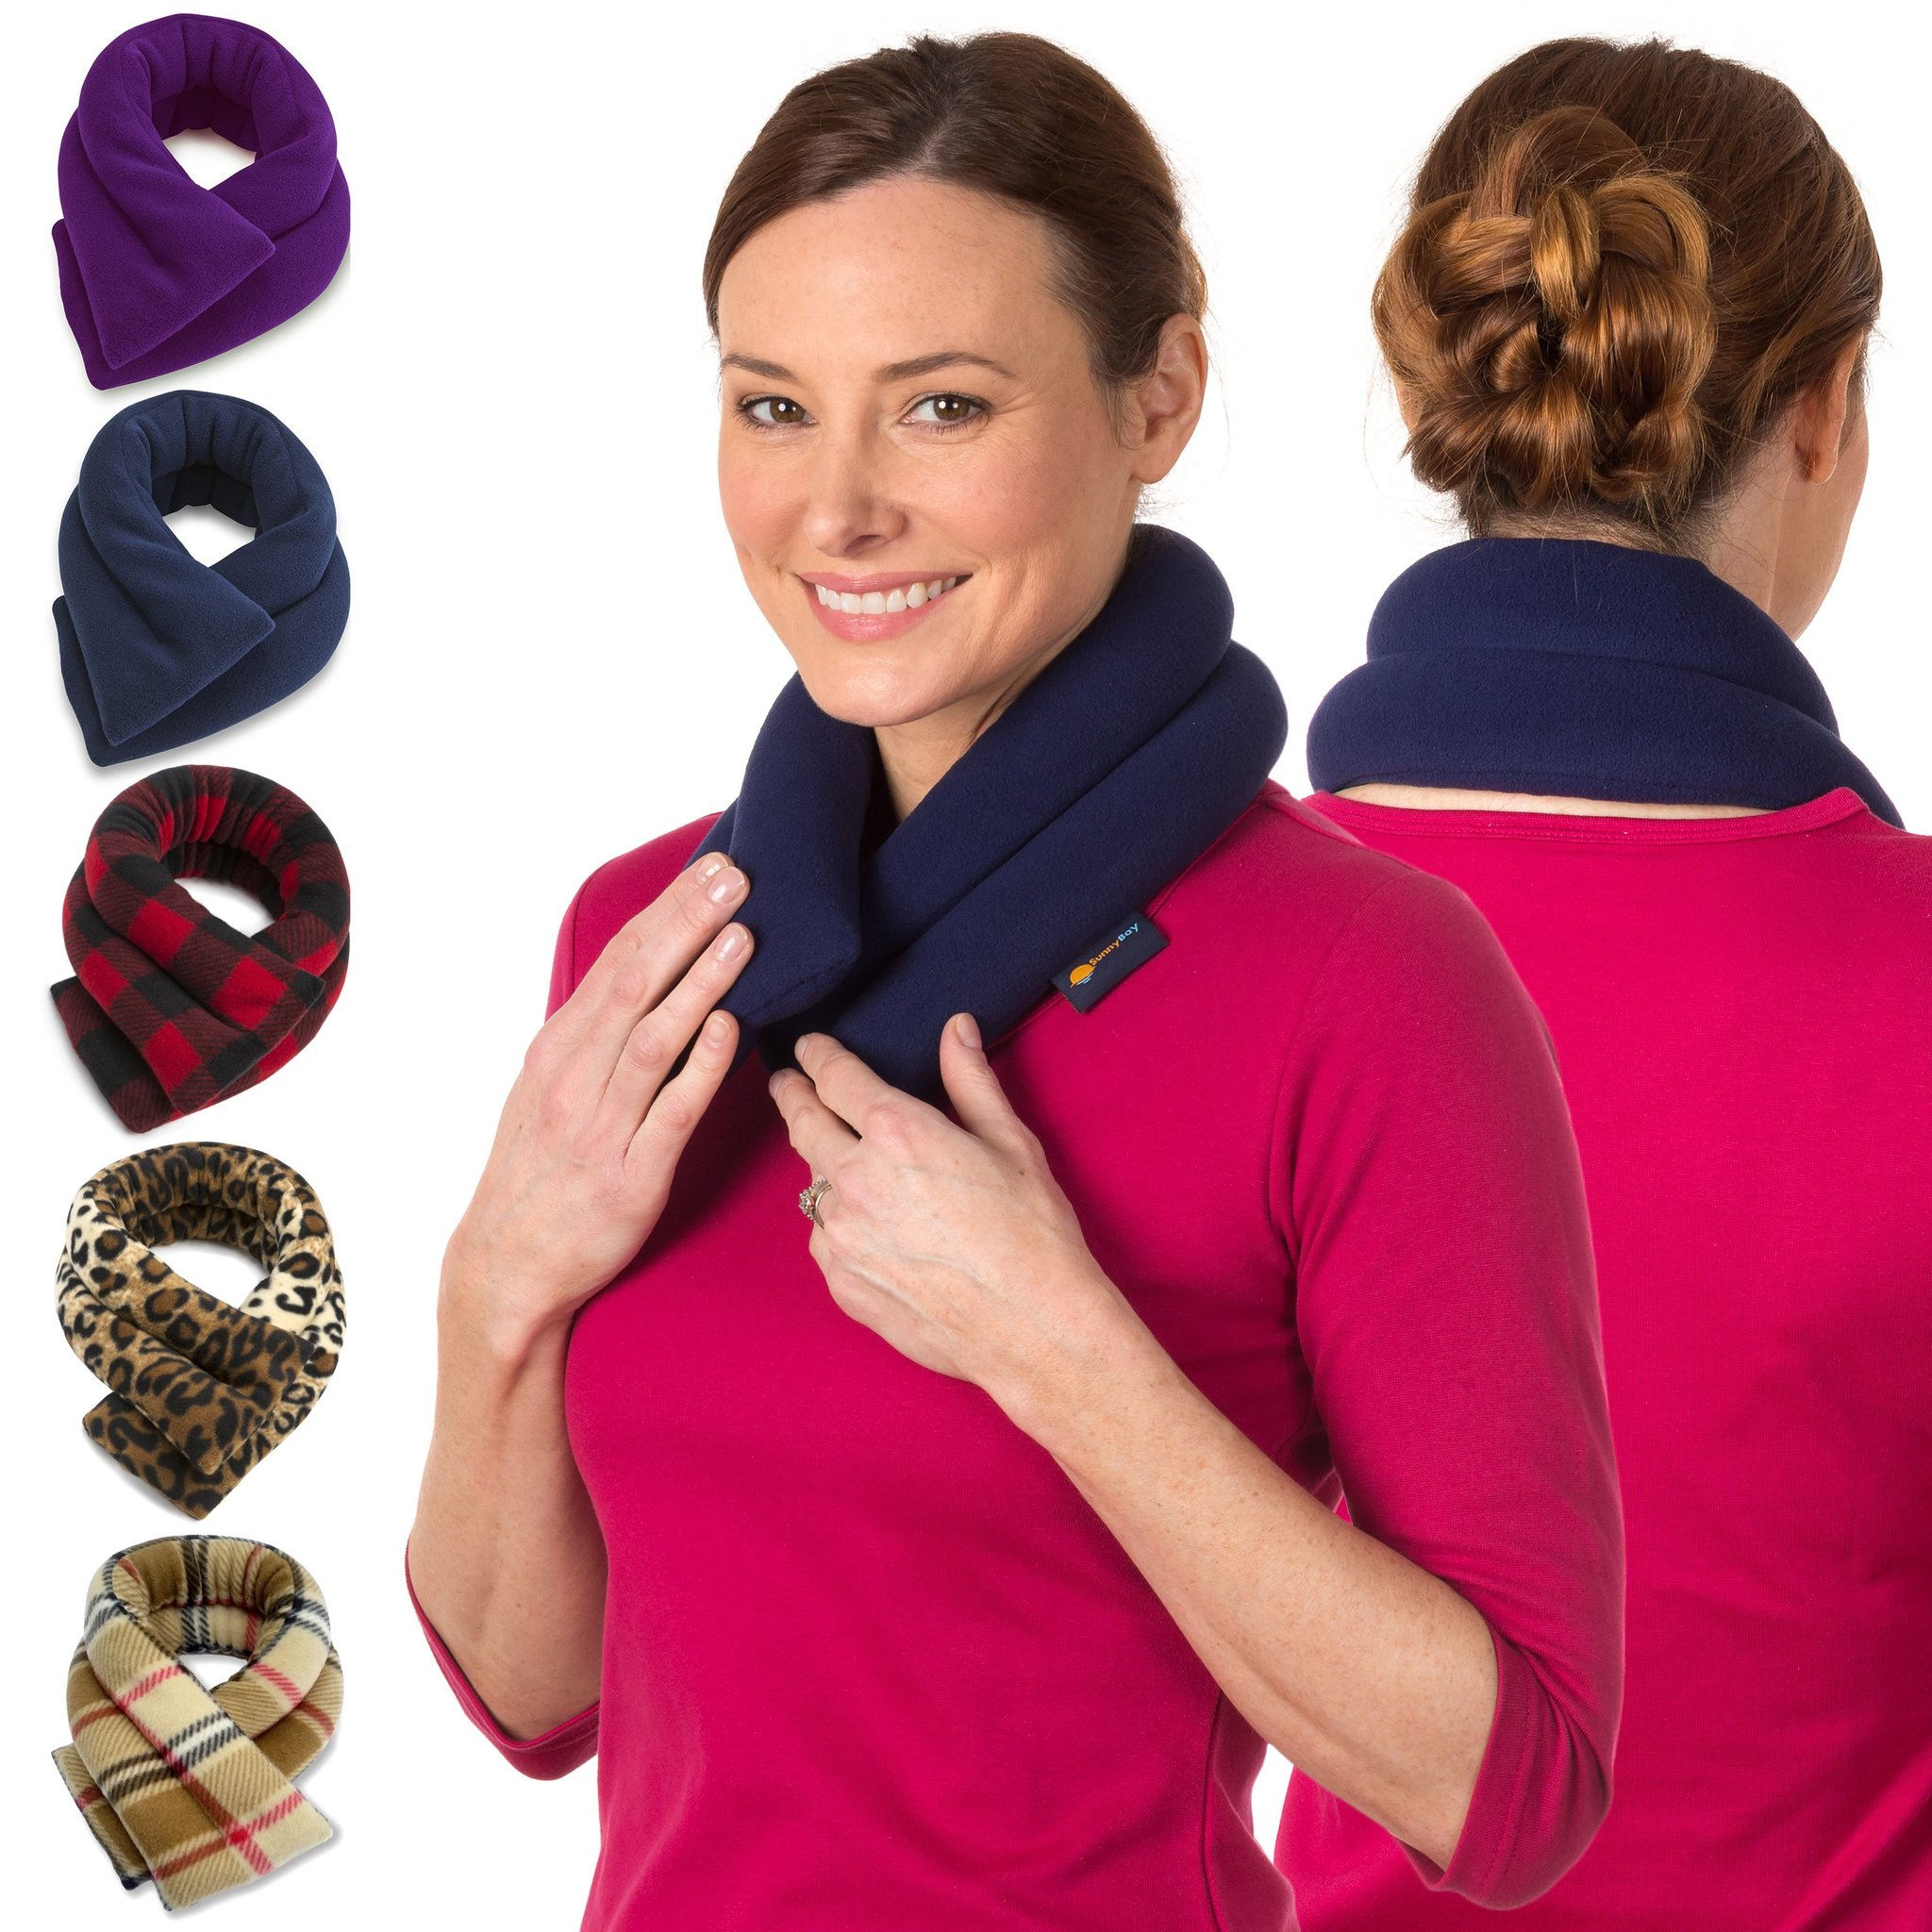 sunnybay extra long neck heating wrap microwavable heat pad heated neck wrap best for neck pain relief midnight blue